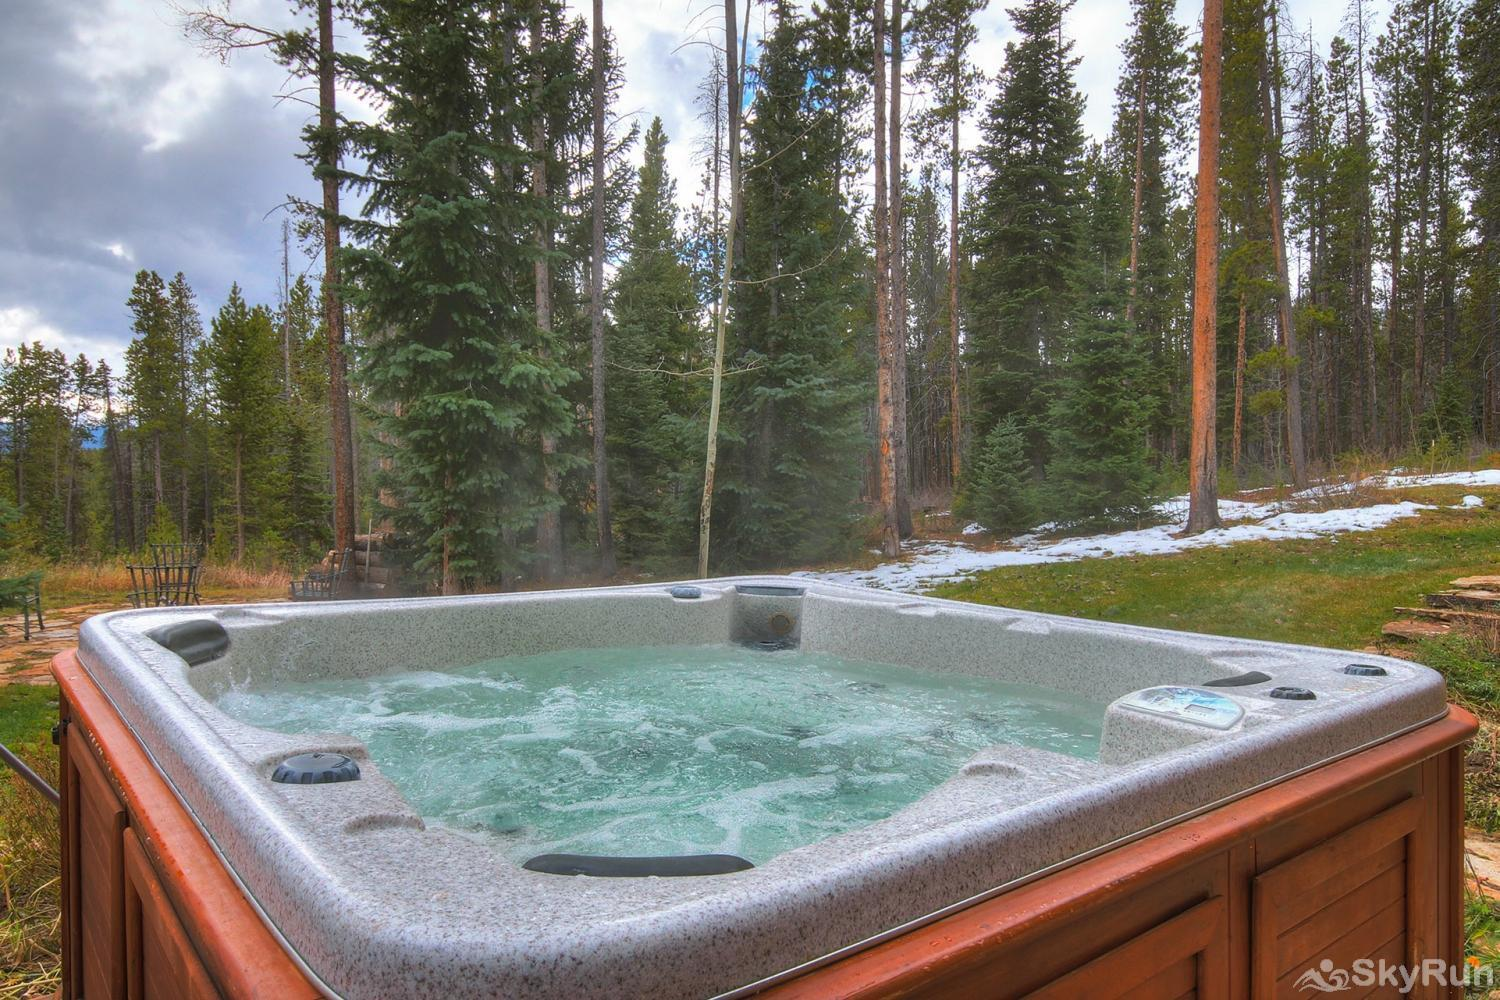 Secret Trail Lodge Soak in the hot tub after a day of fun adventures!